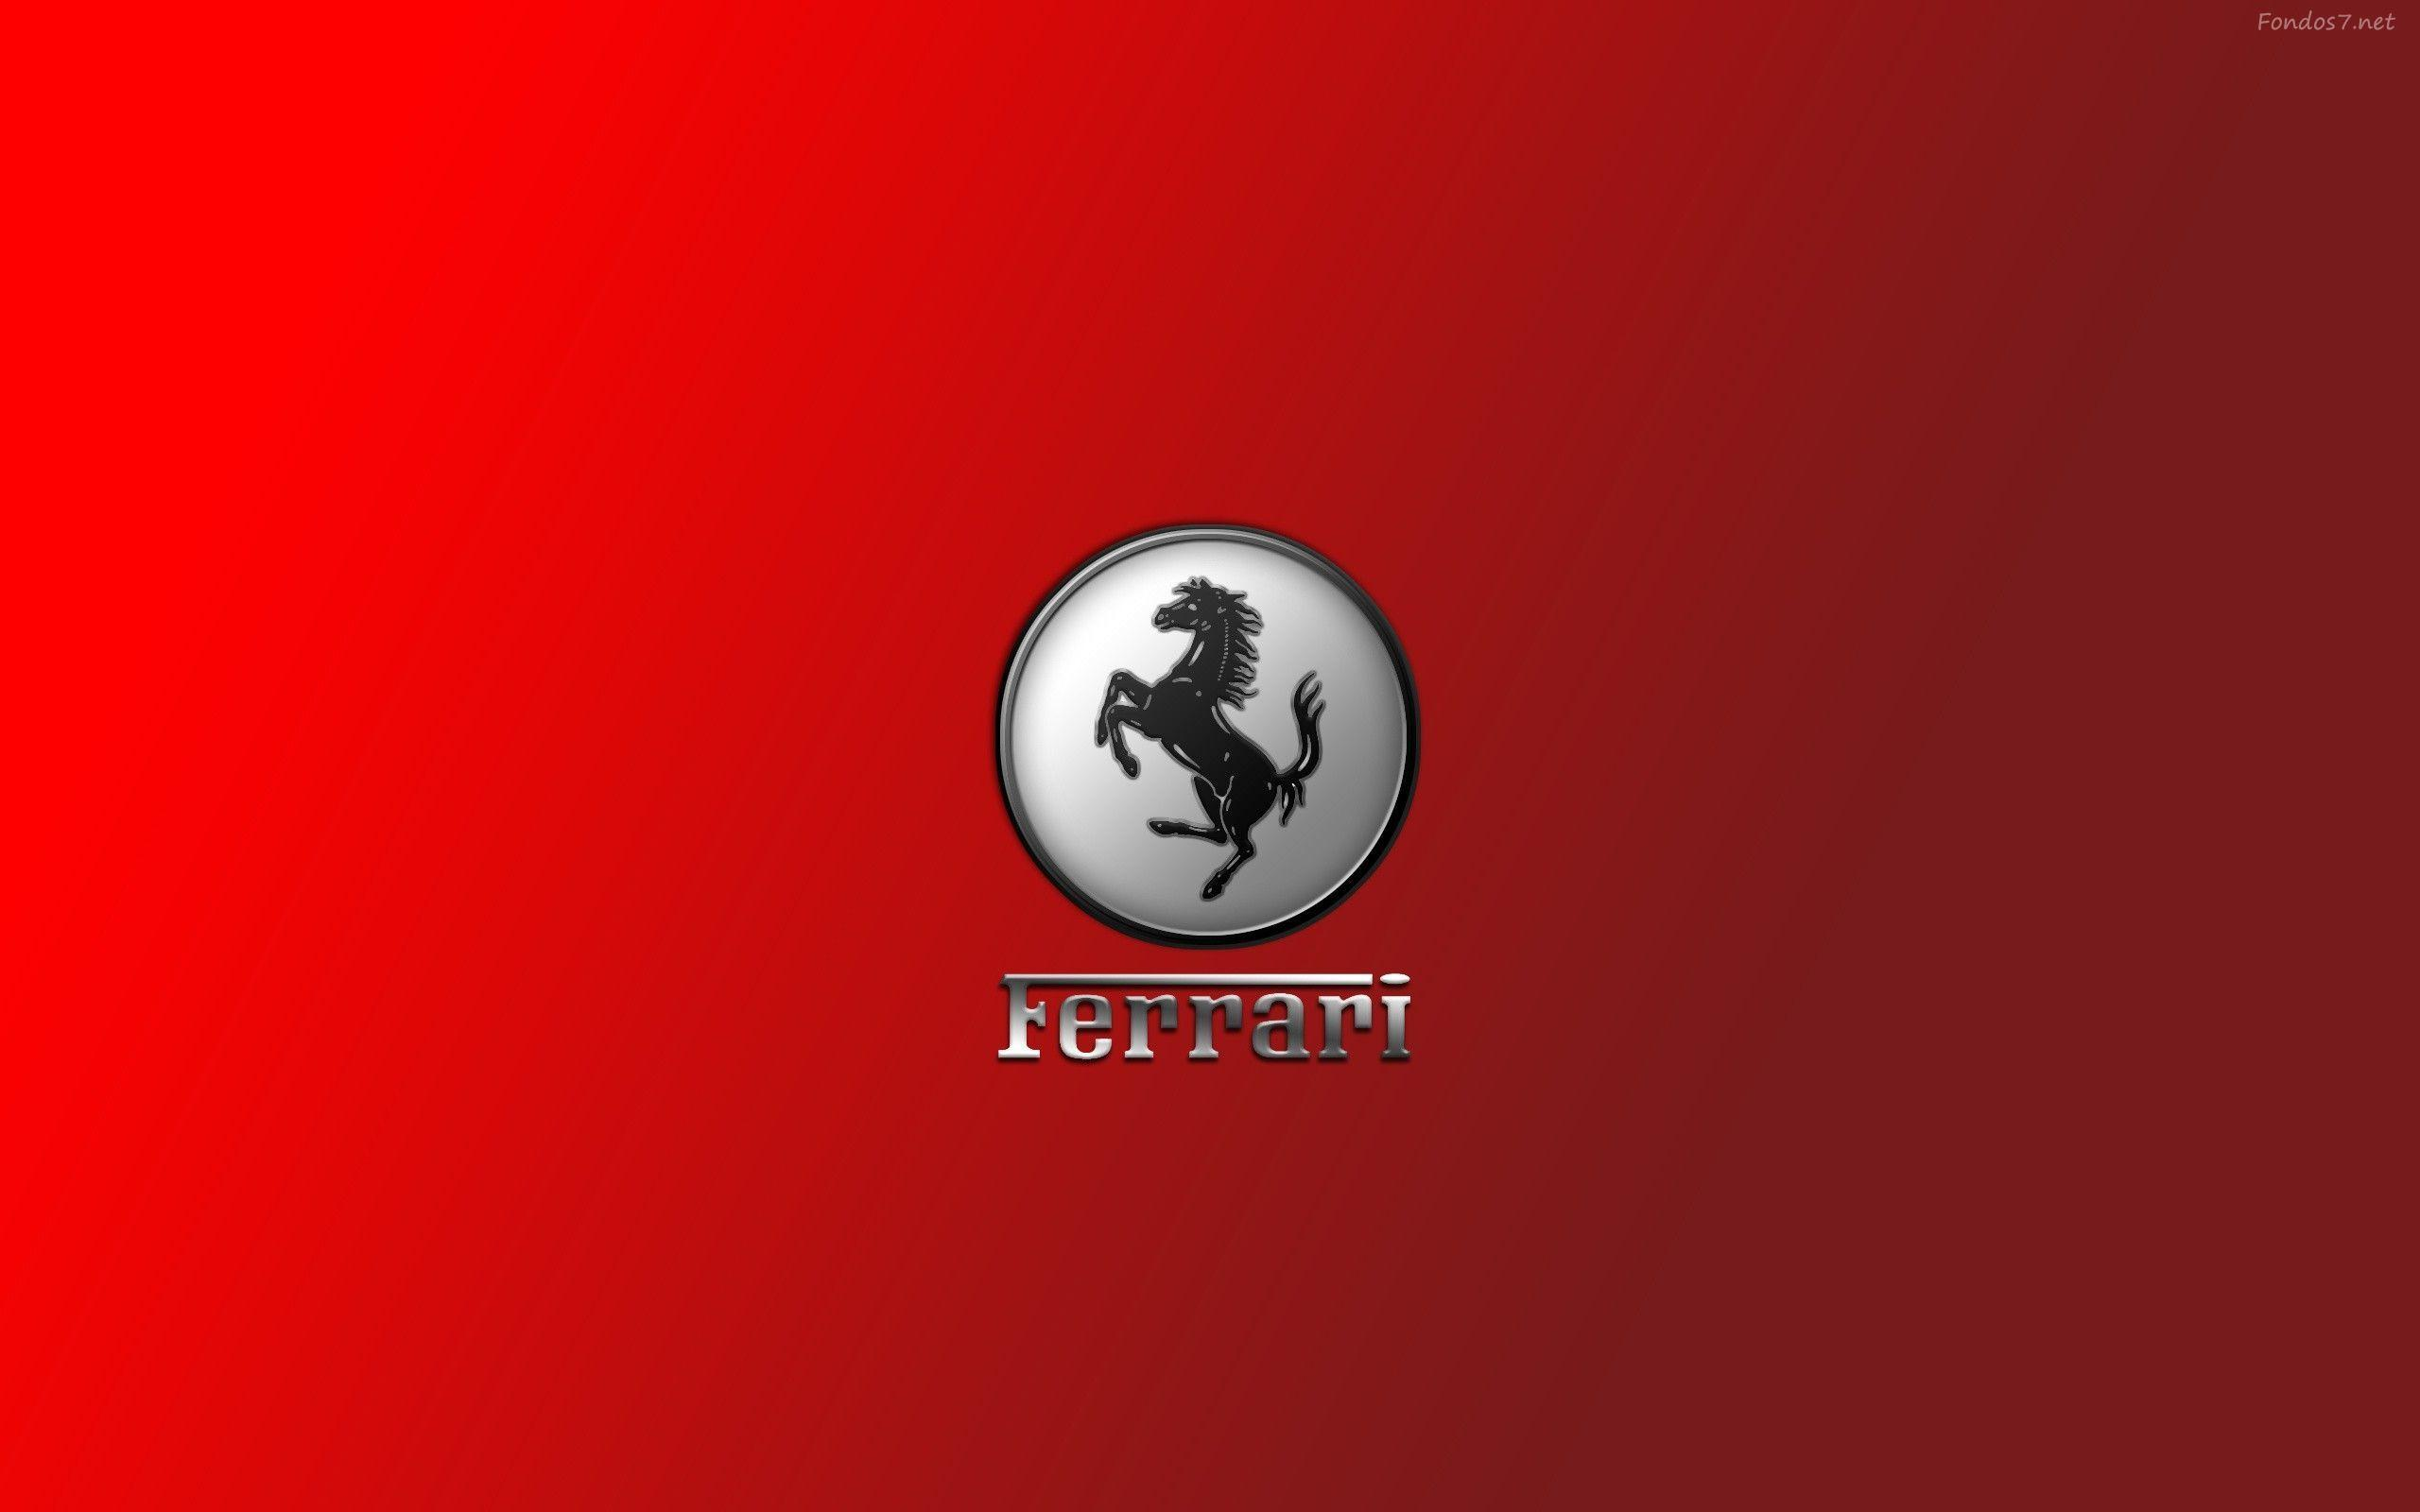 Ferrari Logo Wallpaper 35 Backgrounds | Wallruru.